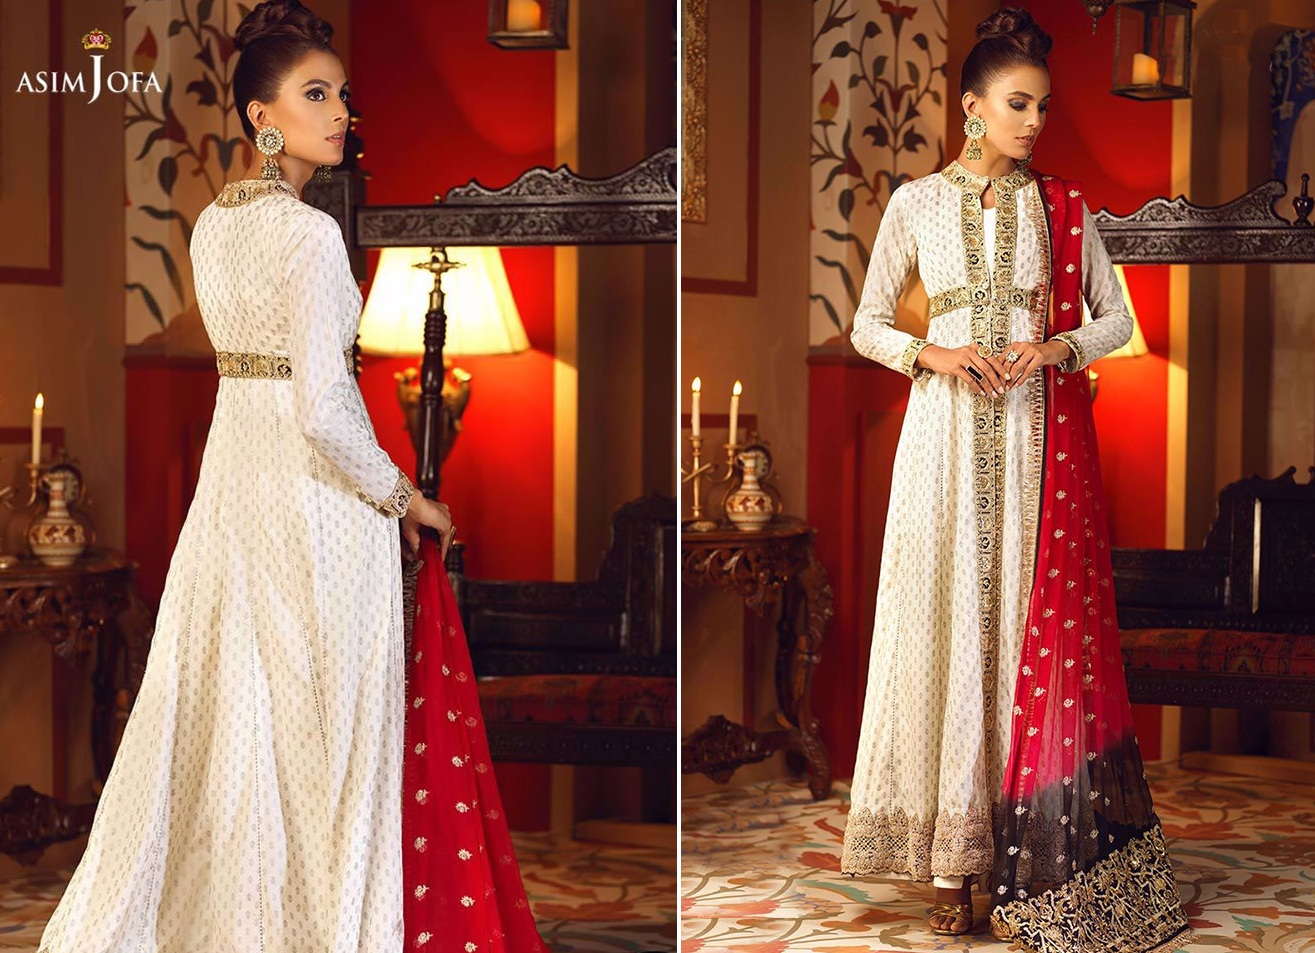 Orne Mysorie Chiffon Dresses Collection 2020 By Asim Jofa (1)